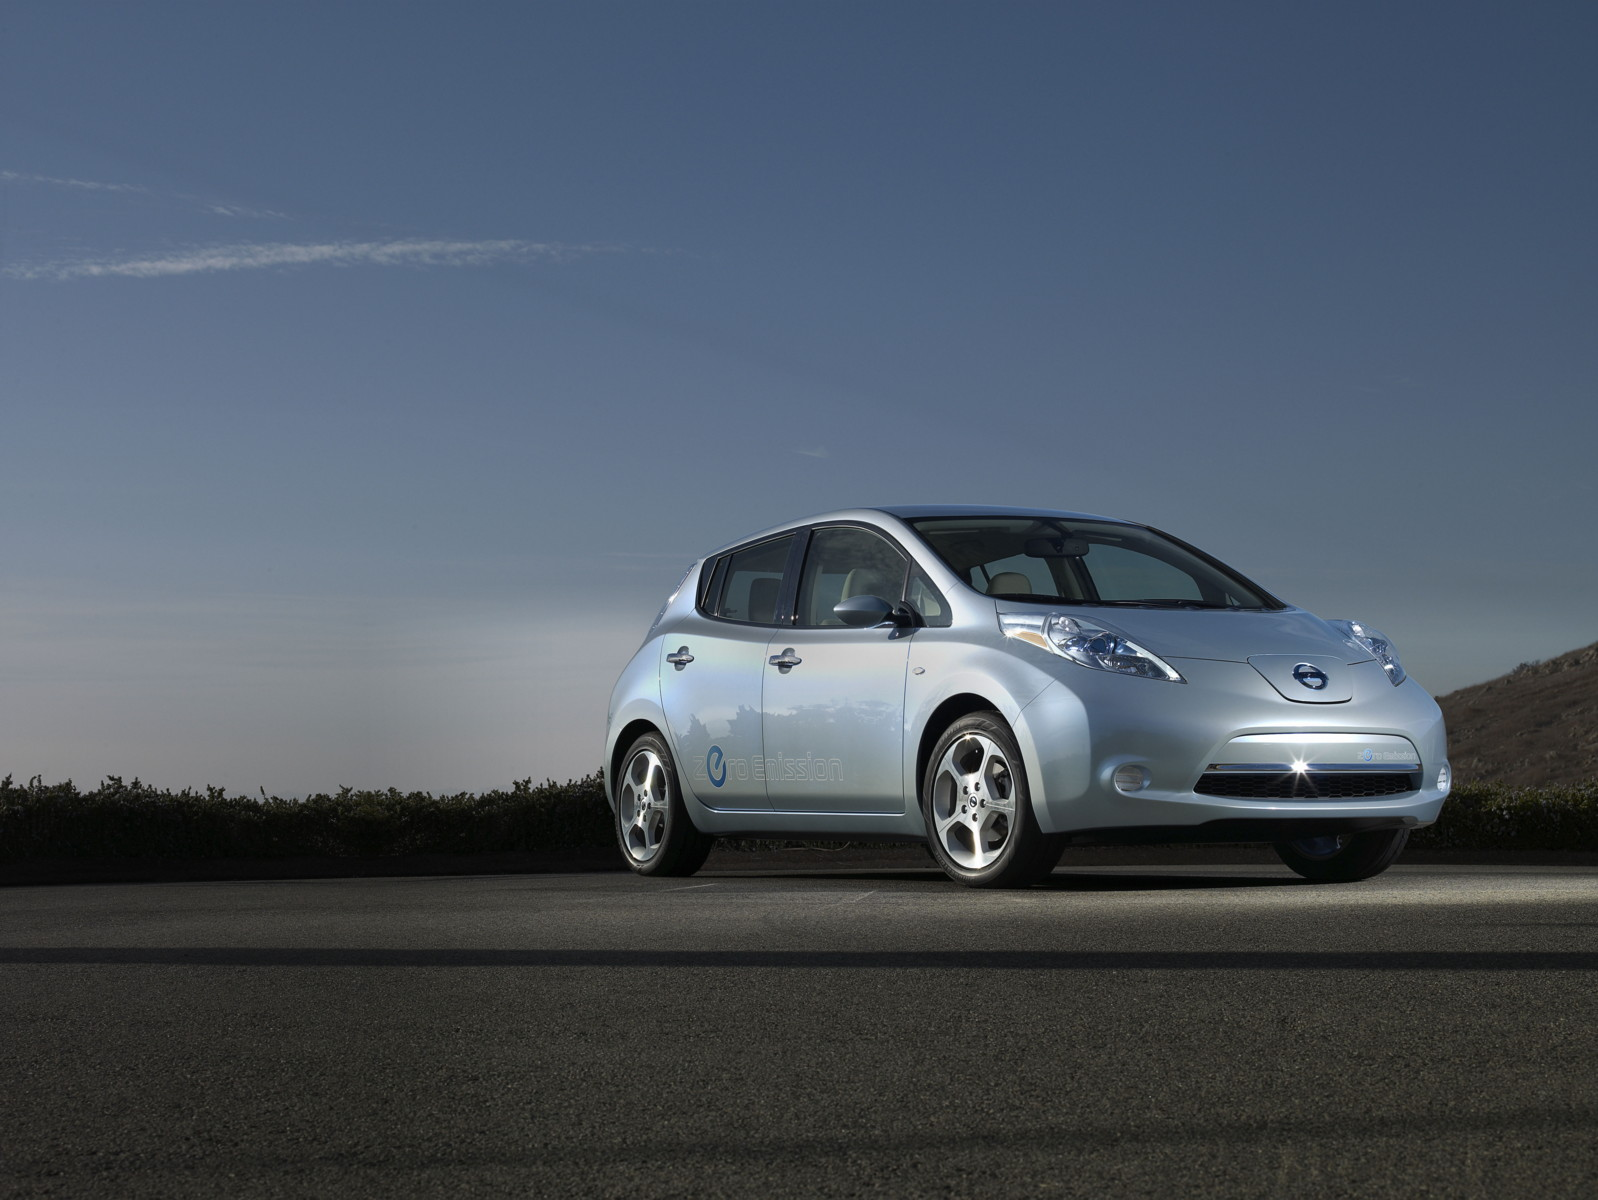 2020 hindsight: What did Leaf, Volt, and other best green cars of 2010 teach us?